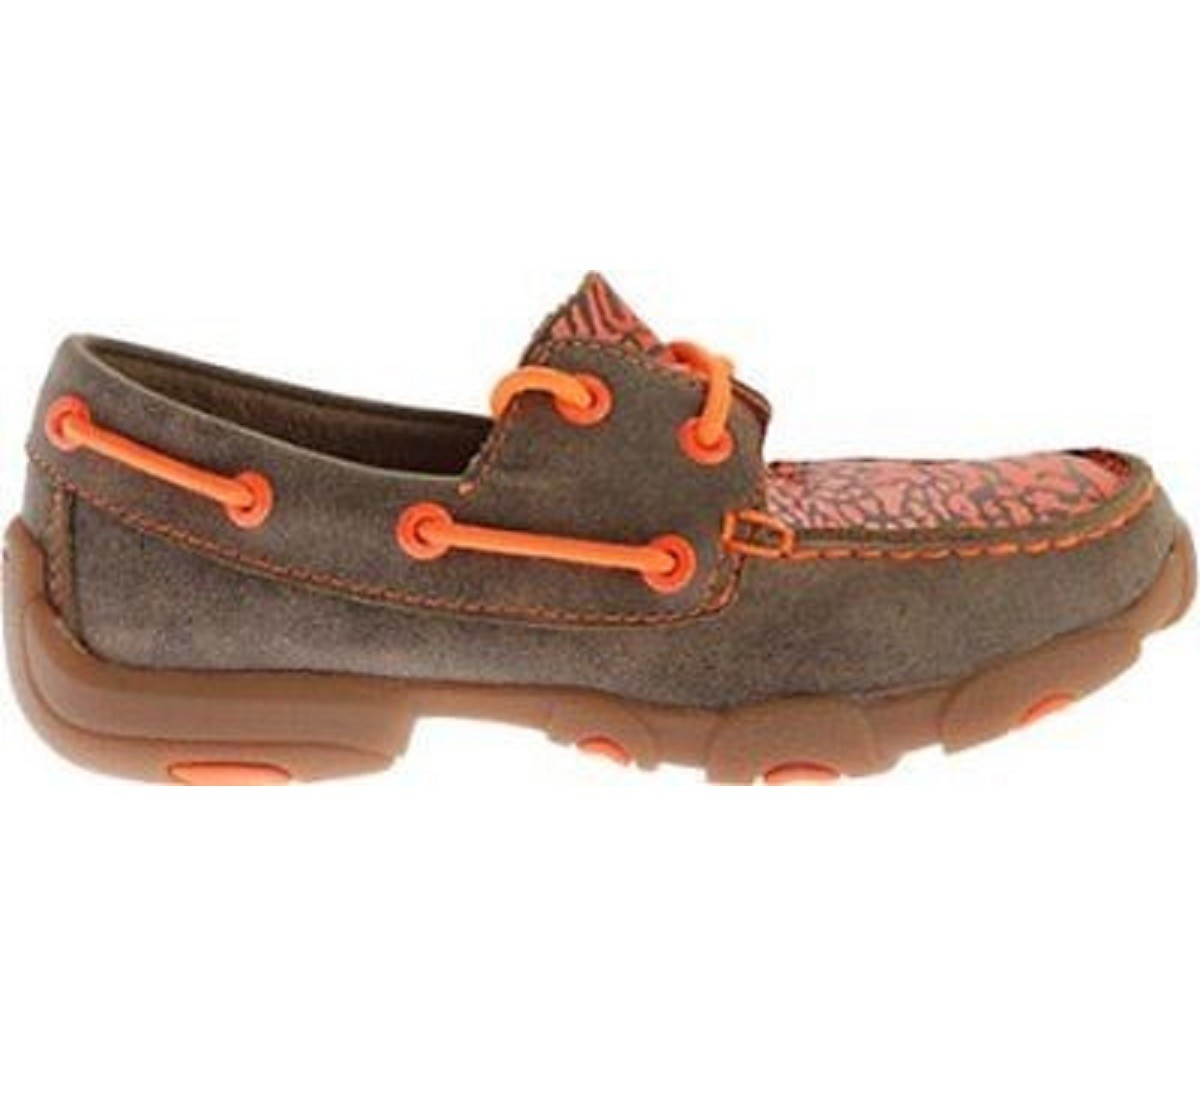 Color:Yellow Orange Size:6 US Twisted X Childrens RIO Cowkids Leather Moccasin